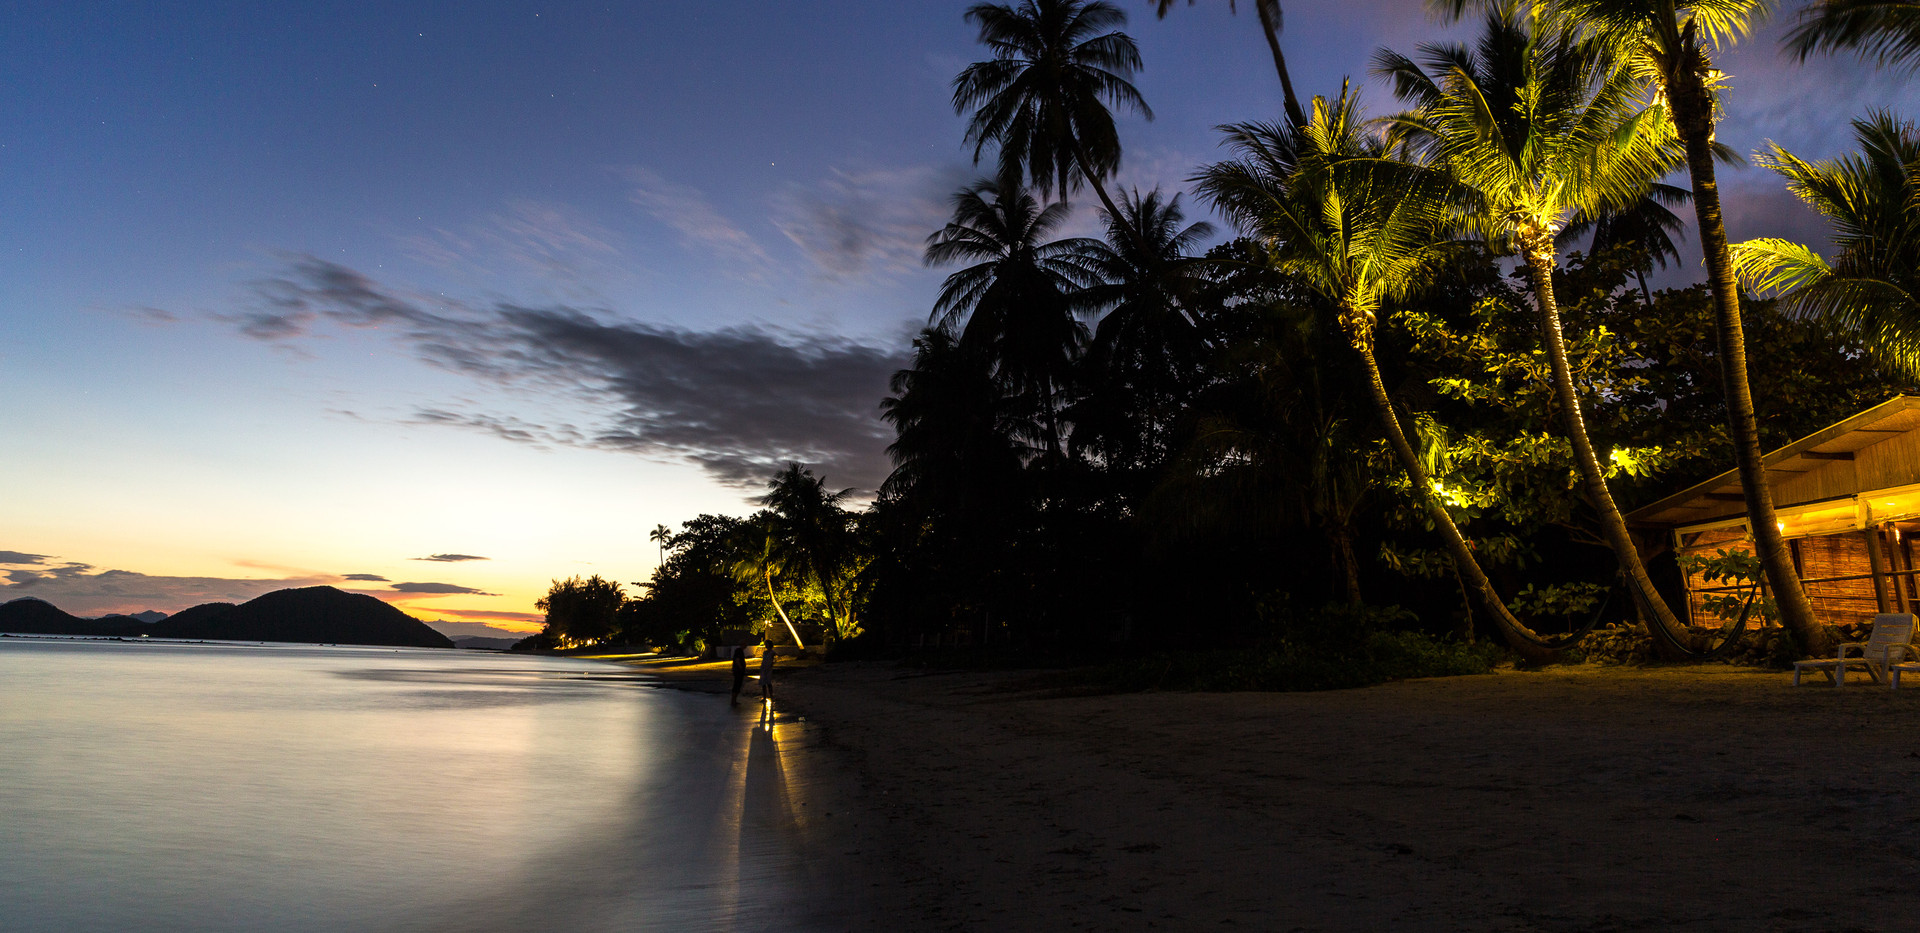 Sundusk-Palm-trees-beach.jpg